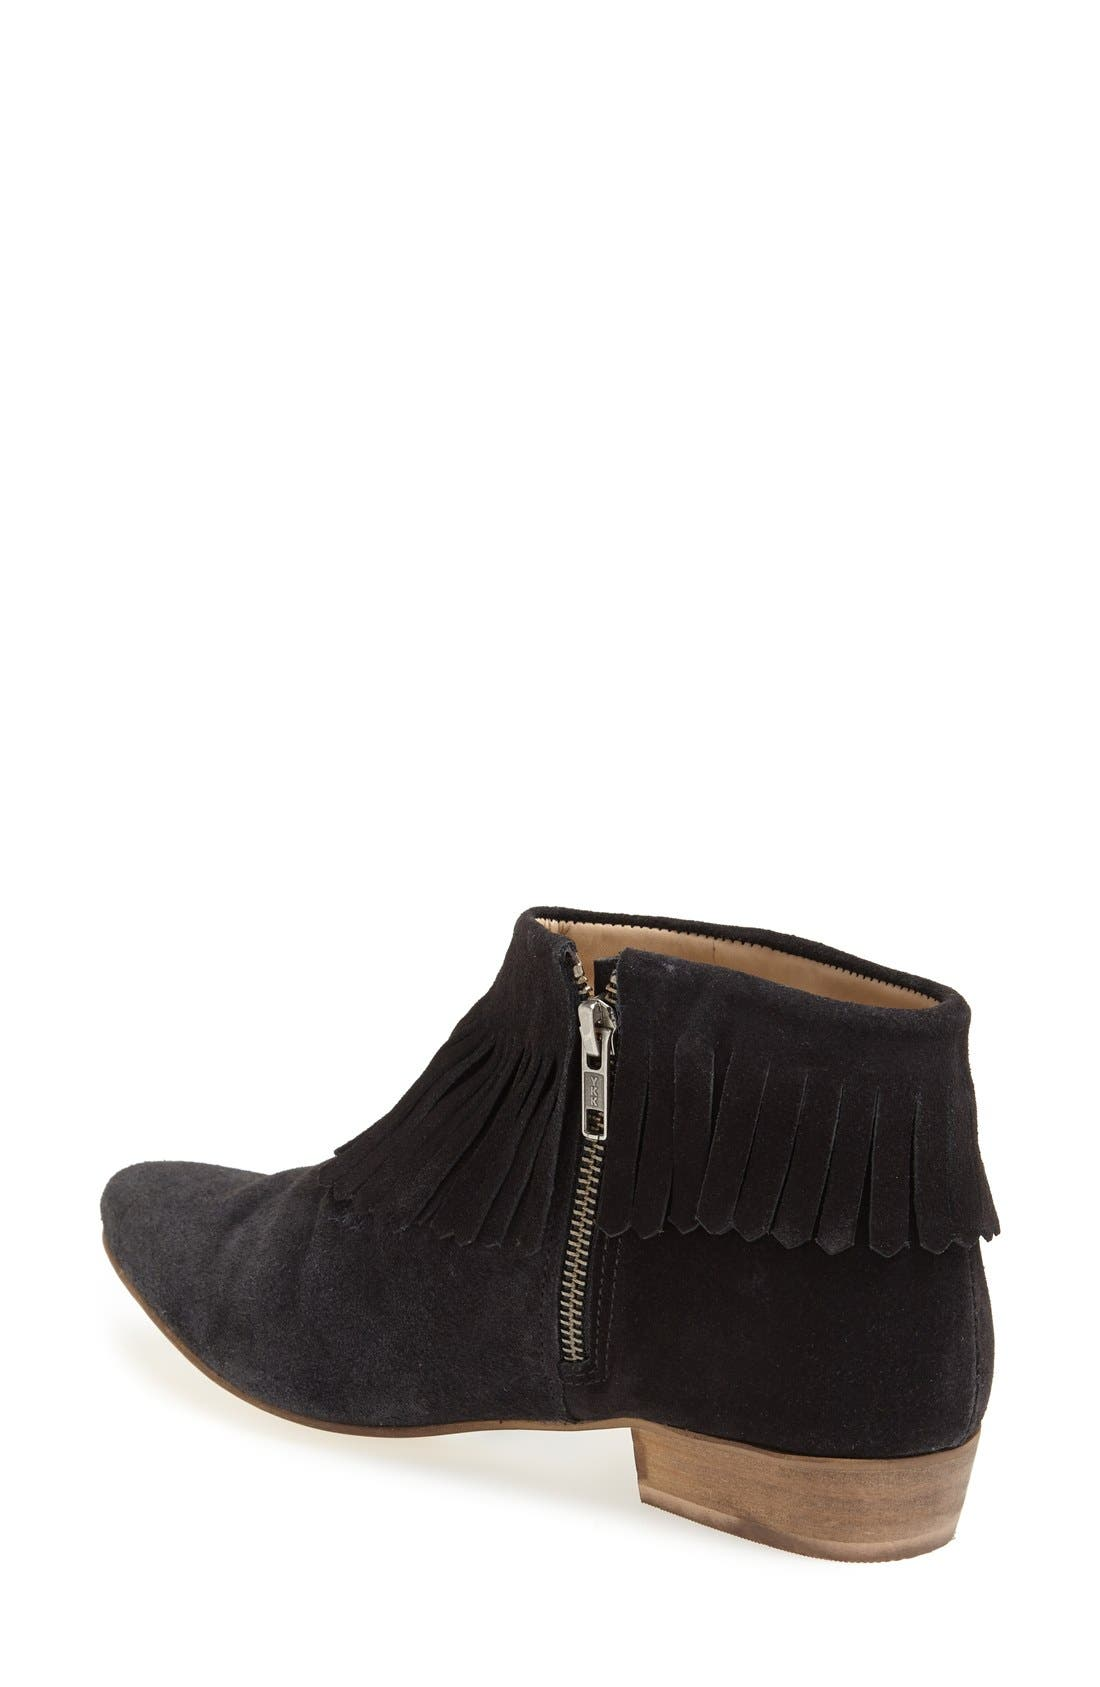 Alternate Image 2  - Topshop 'Blinked' Fringe Ankle Boot (Women)